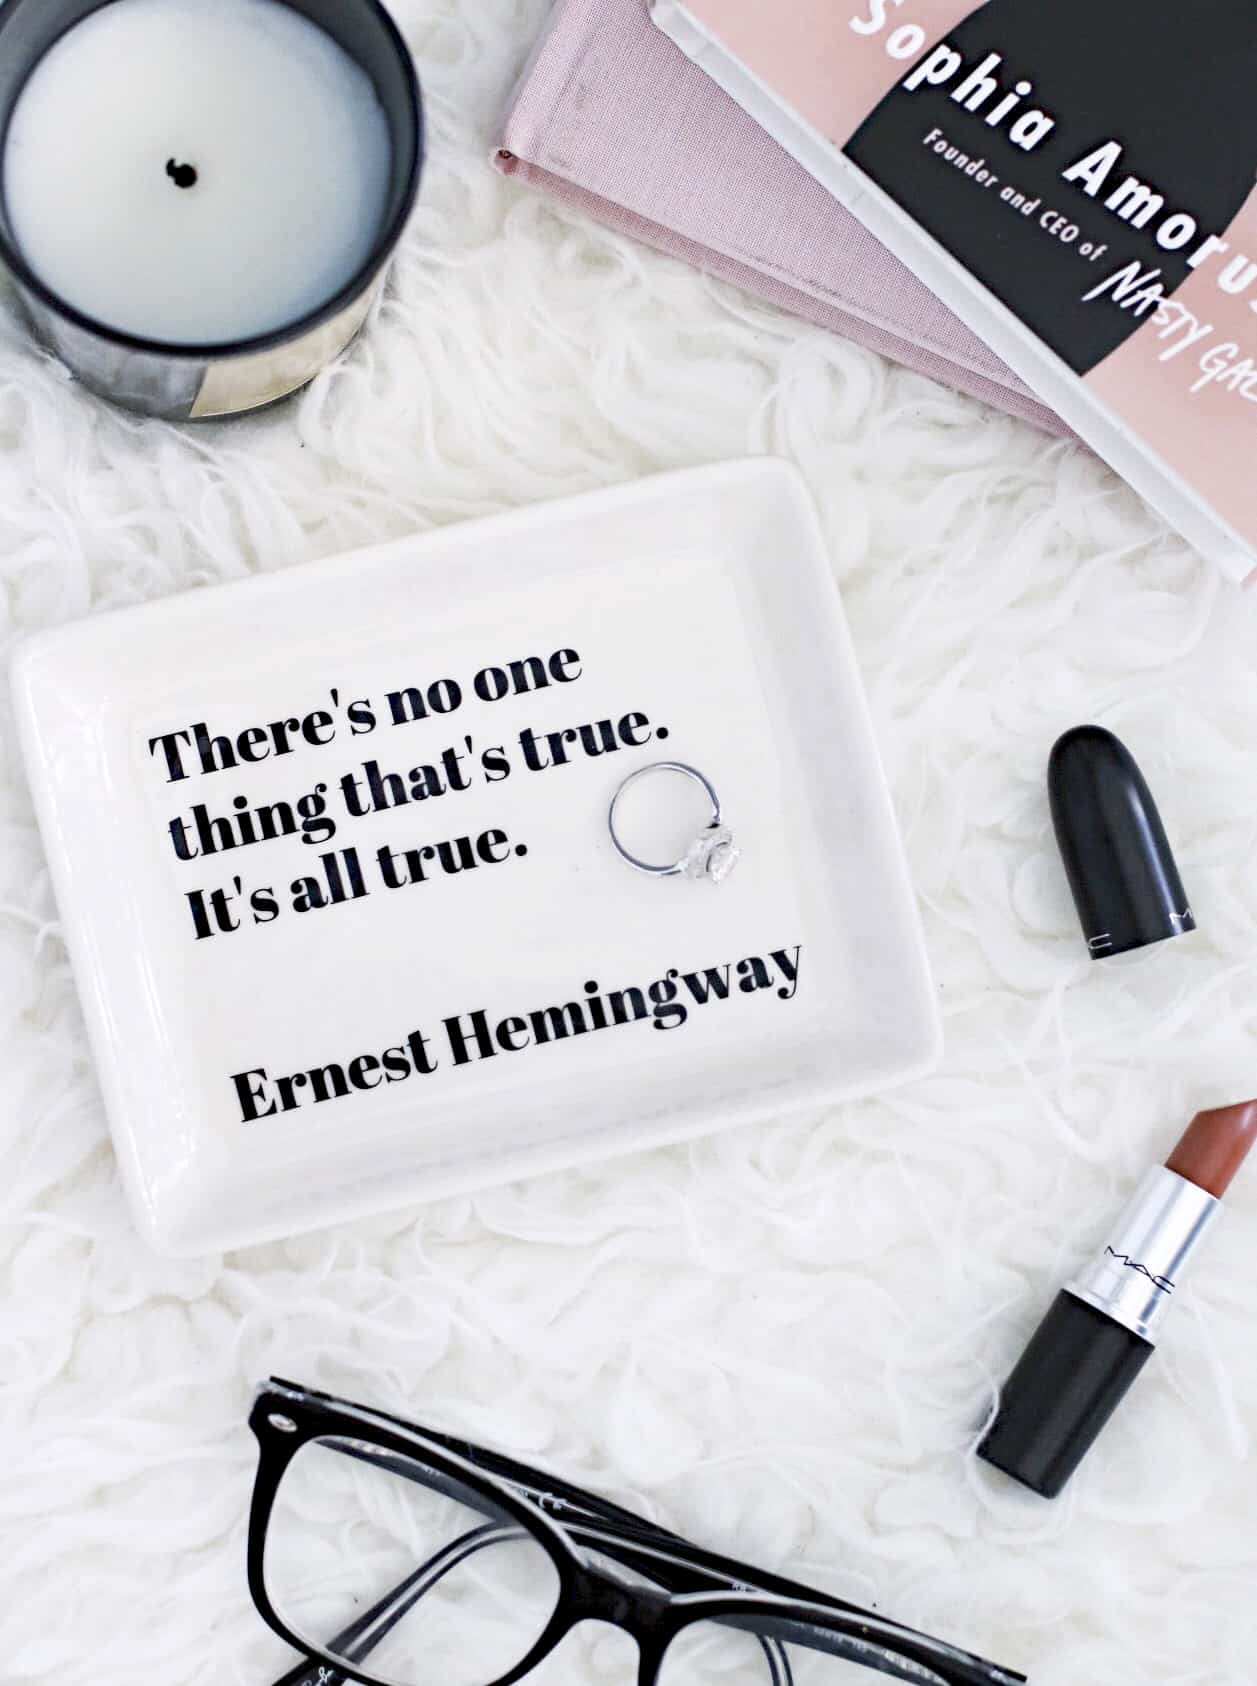 Ernest Hemingway quote flat lay